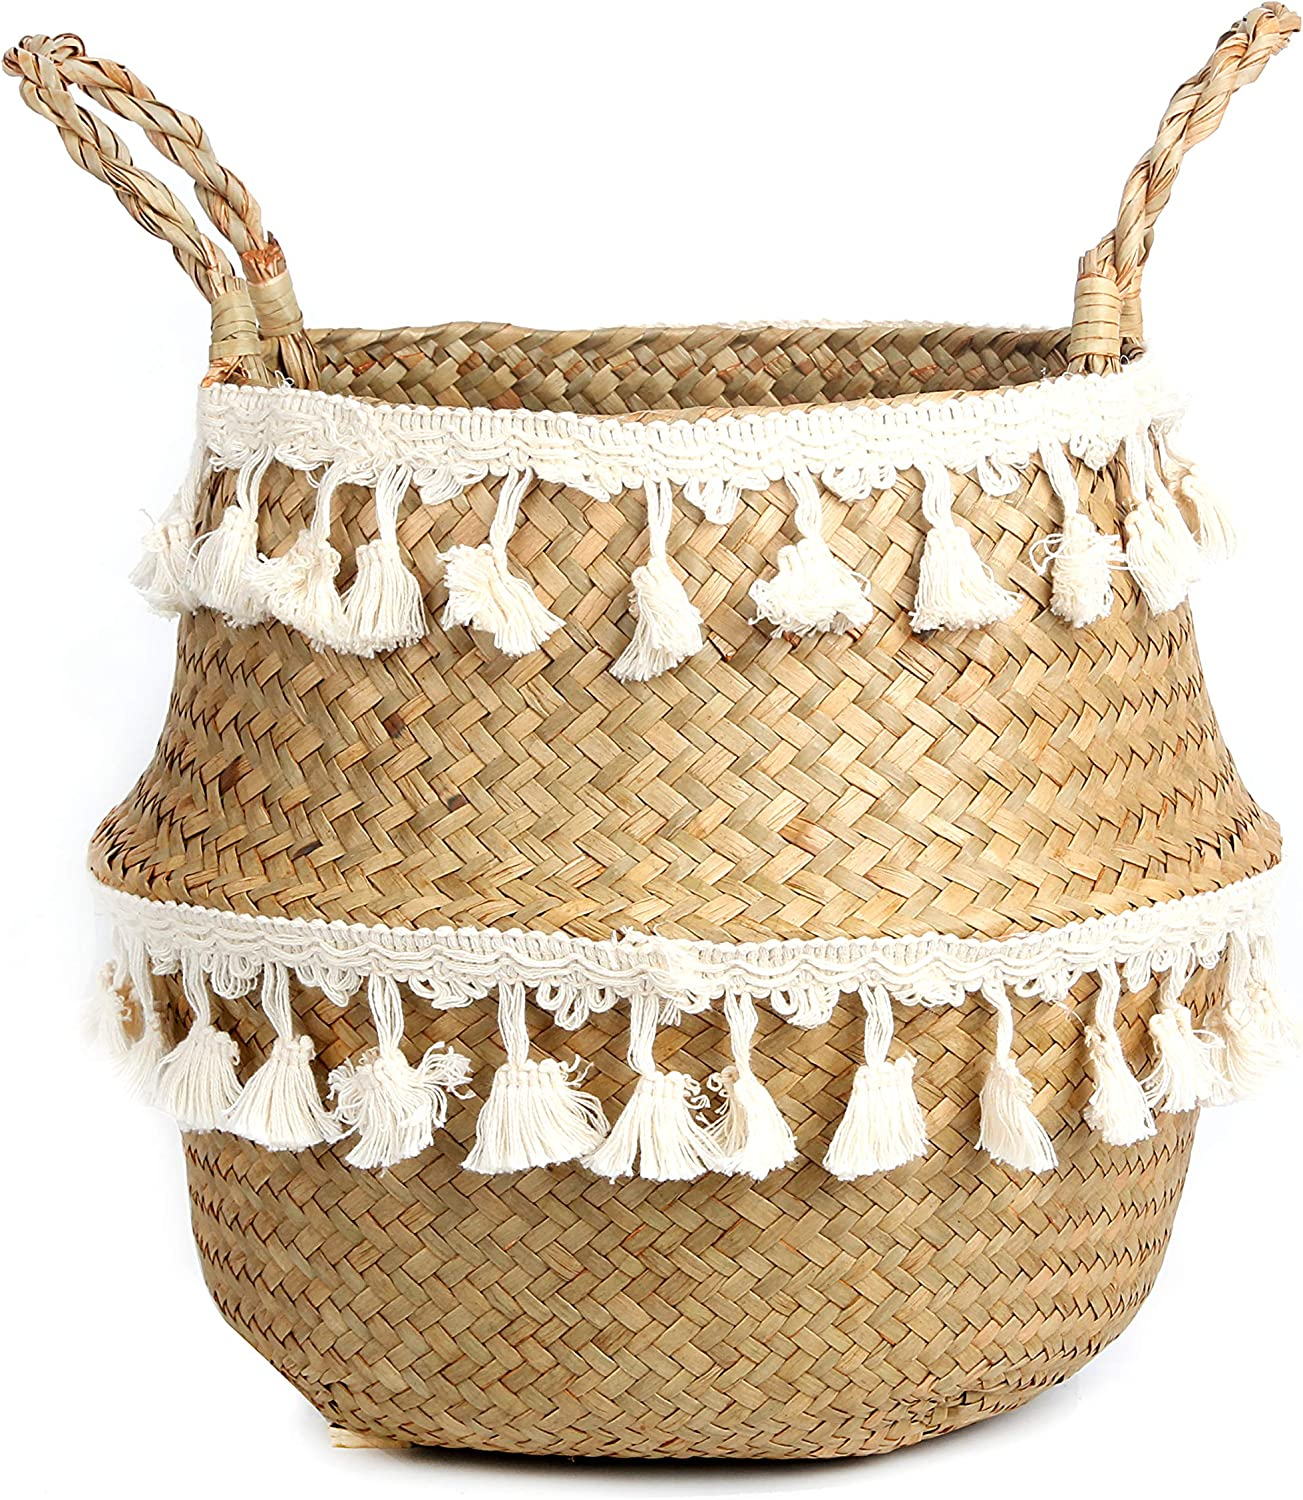 BlueMake Tassel Macrame Woven Seagrass Belly Basket for Storage, Decoration, Laundry, Picnic, Plant Basin Cover, Groceries and Toy Storage (Medium, Tassel)